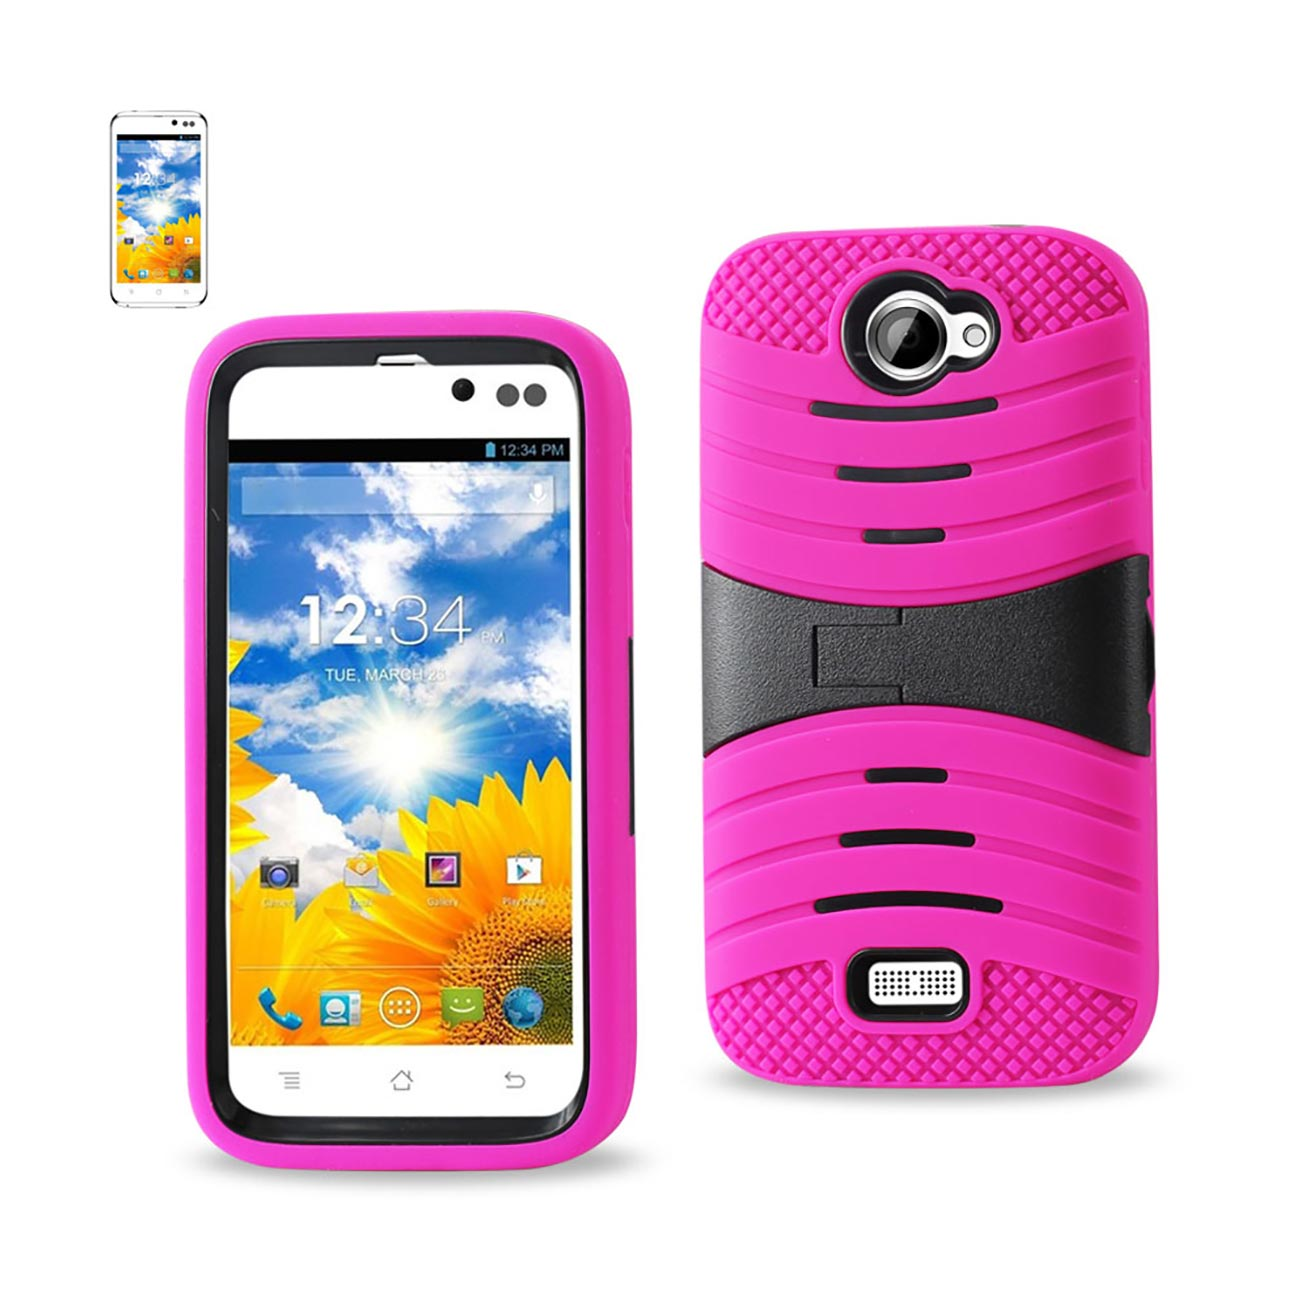 Reiko - Silicone Case Plus Protector Cover for BLU Advance 4.50 A310A, A310I - Hot Pink/Black